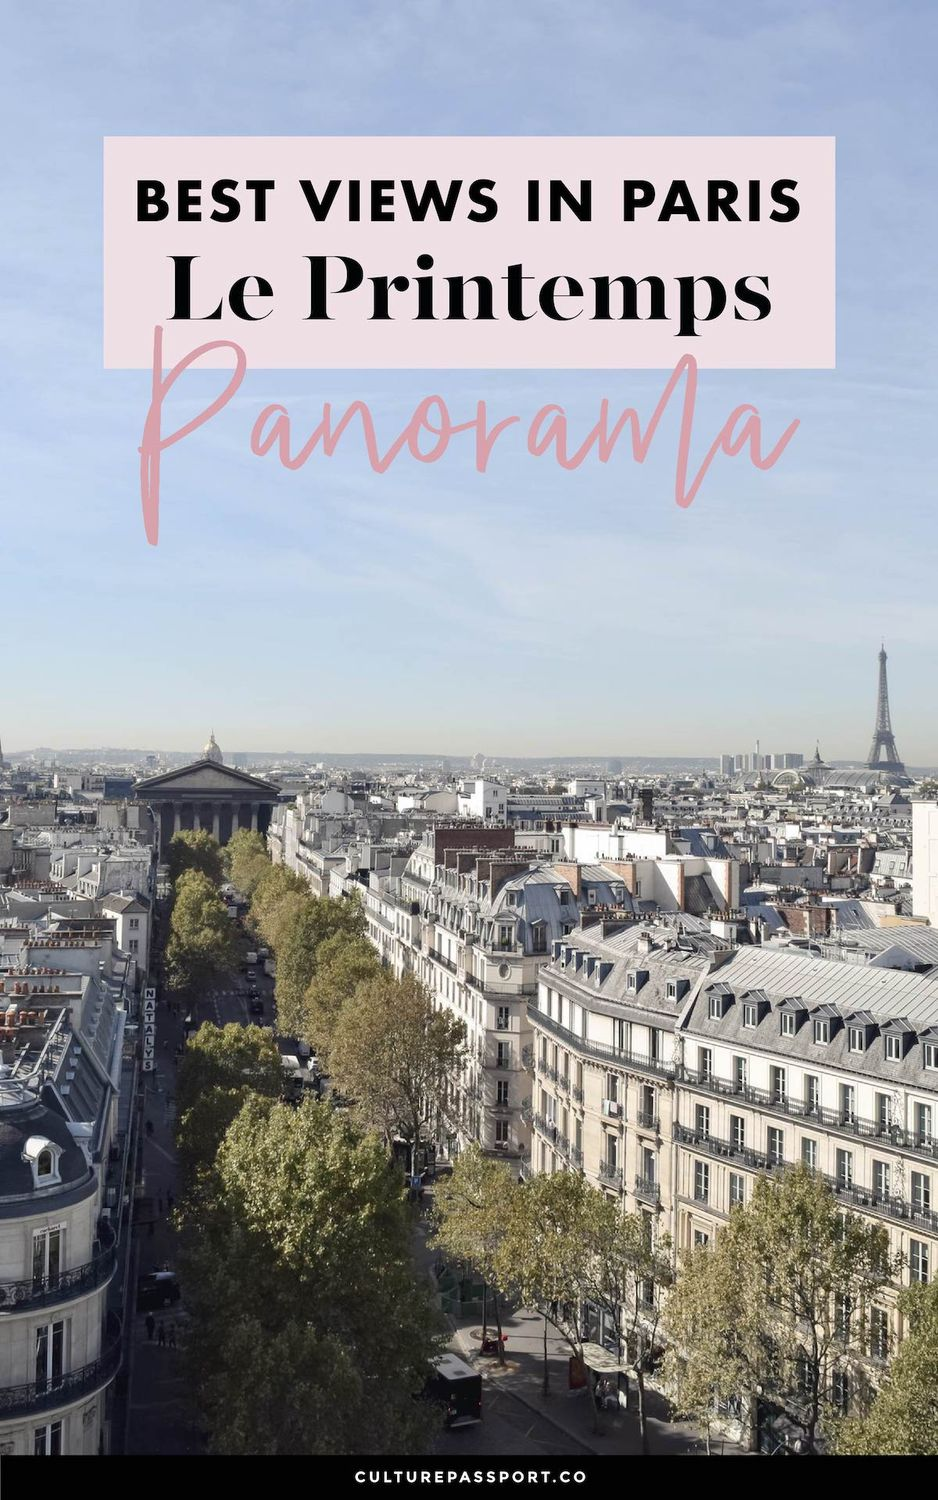 Le Printemps Best Views In Paris